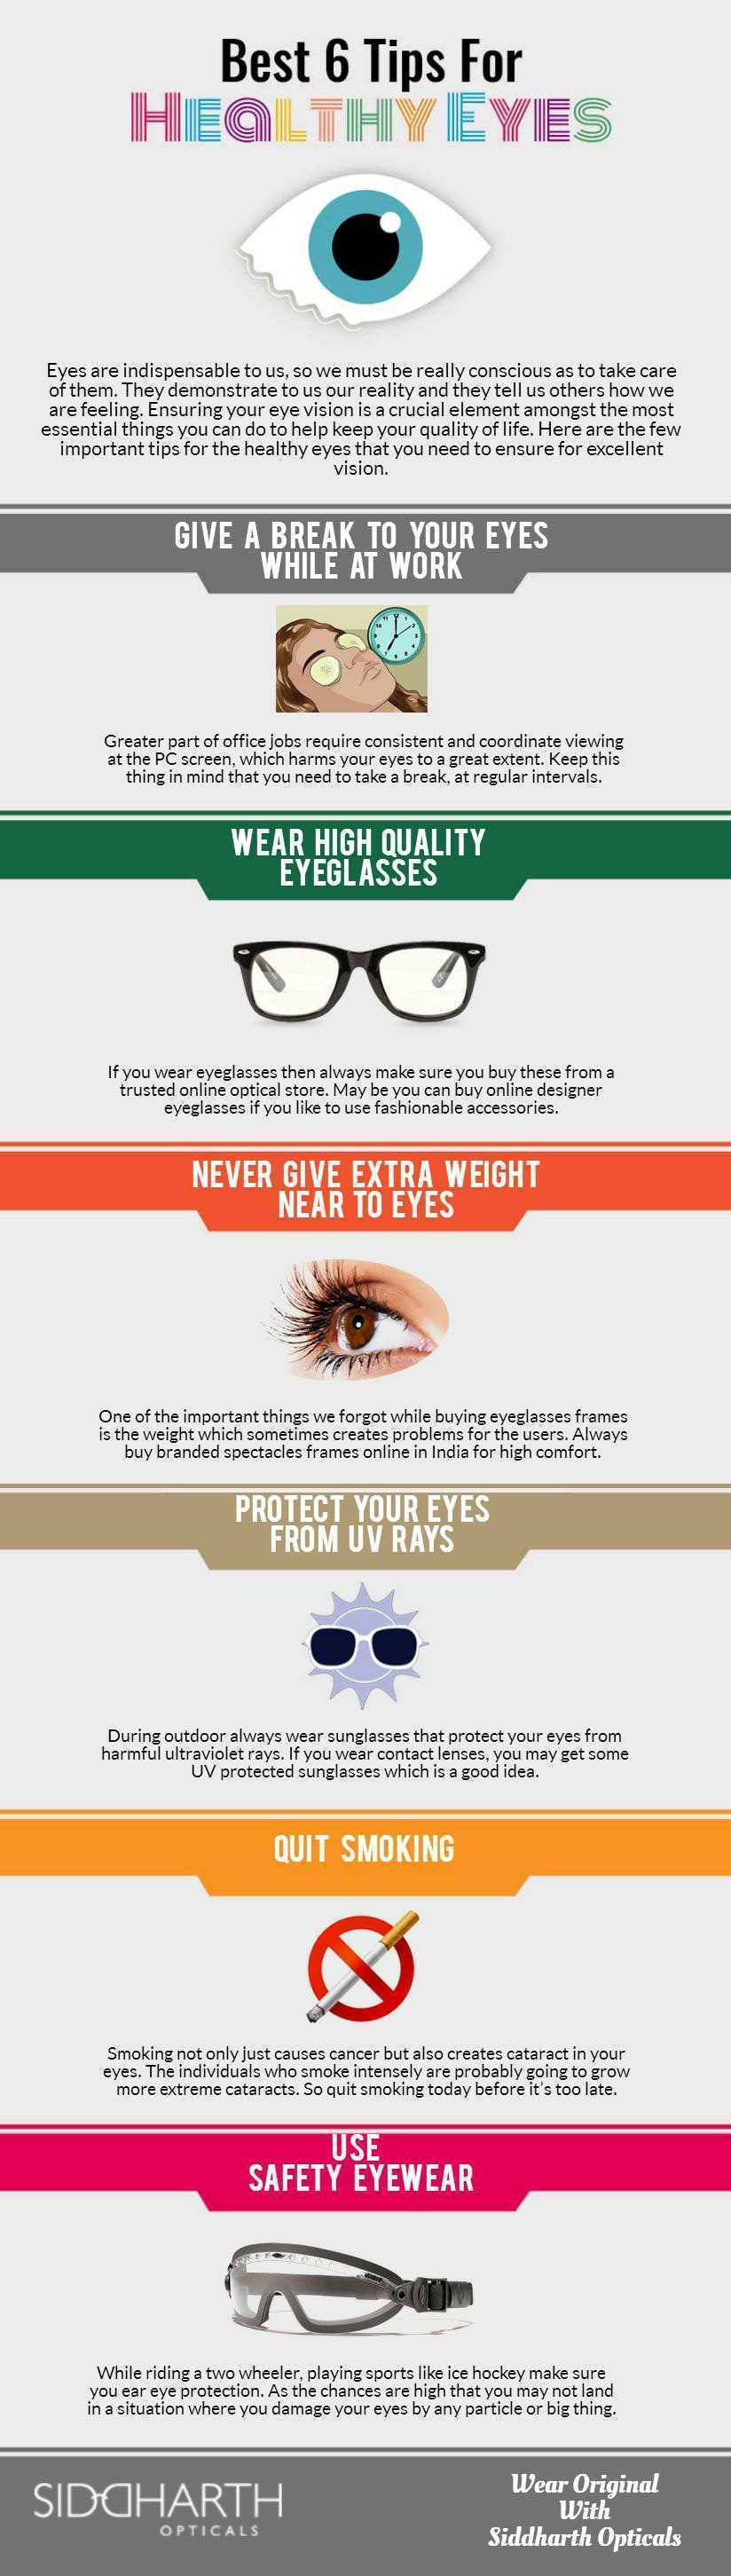 Find the perfect cat eye eye glasses online for your face and